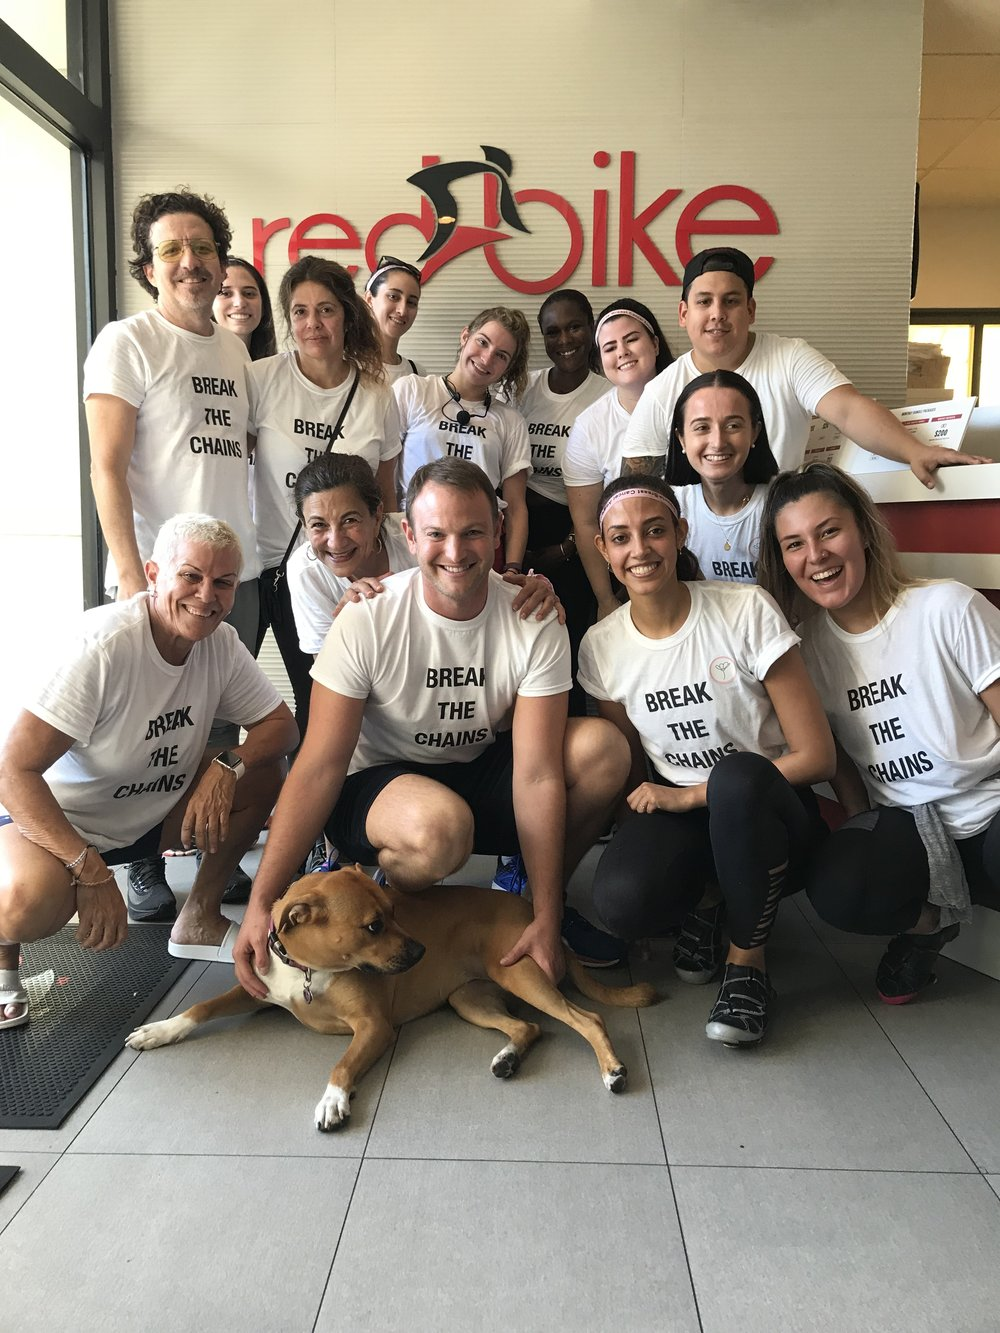 #SpinforSurvivors with our new friends at RedBike!